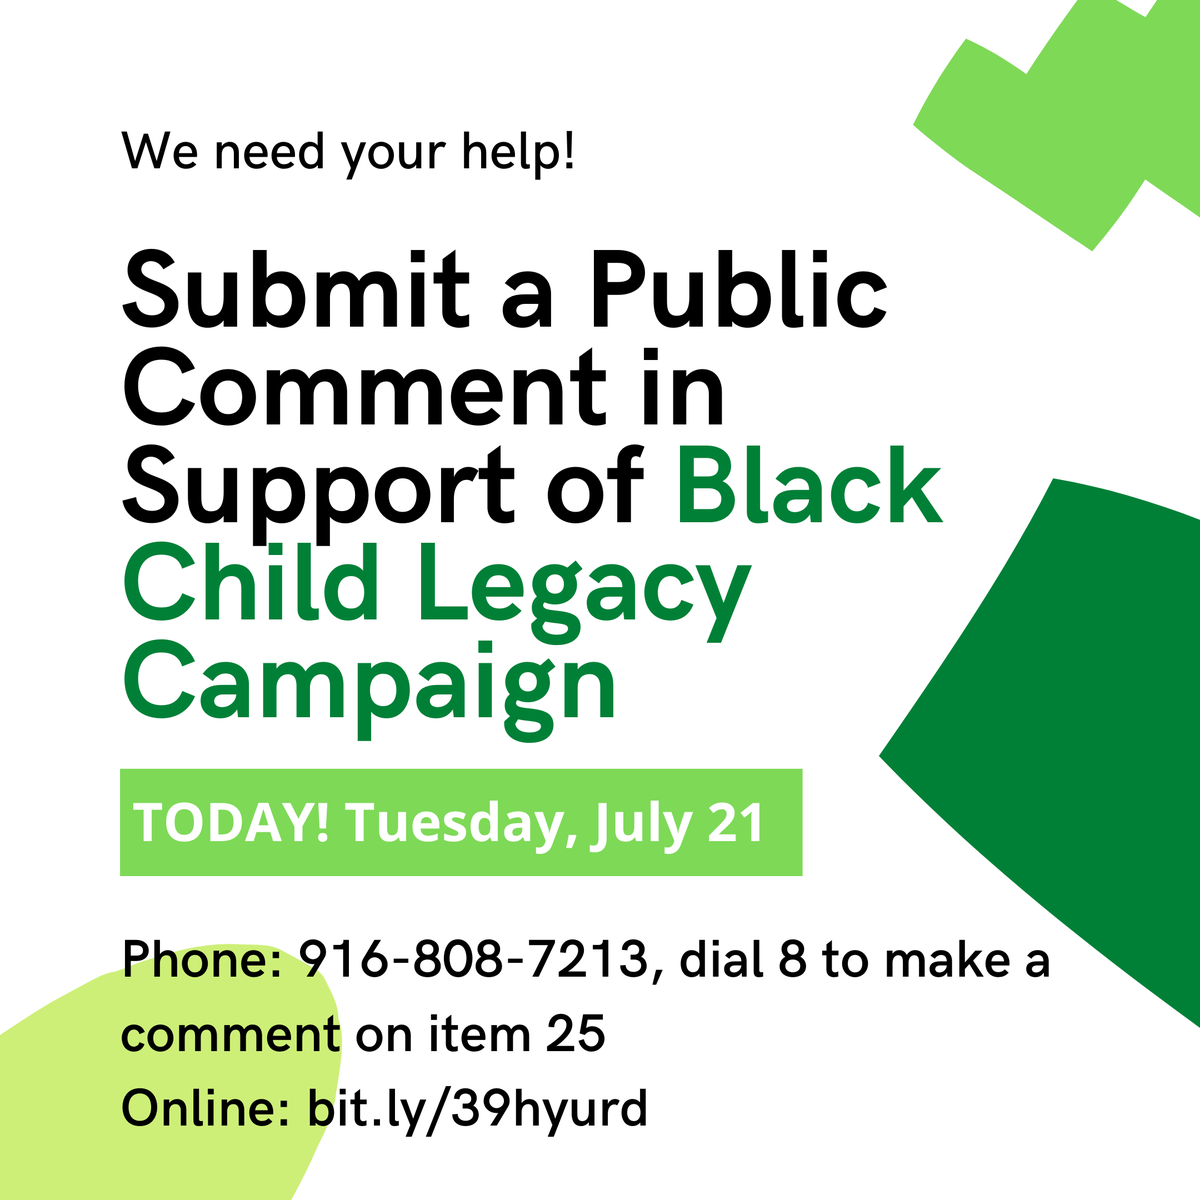 Healing the Hood City Council Meeting July 21 @5pm  To submit public comment on Black Child Legacy Campaign – Healing the Hood (Item 25), call 916-808-7213 and dial 8 to make a comment on item 25 or leave a comment online at https://t.co/5x756cCi7B https://t.co/WtOyPKt0Zk